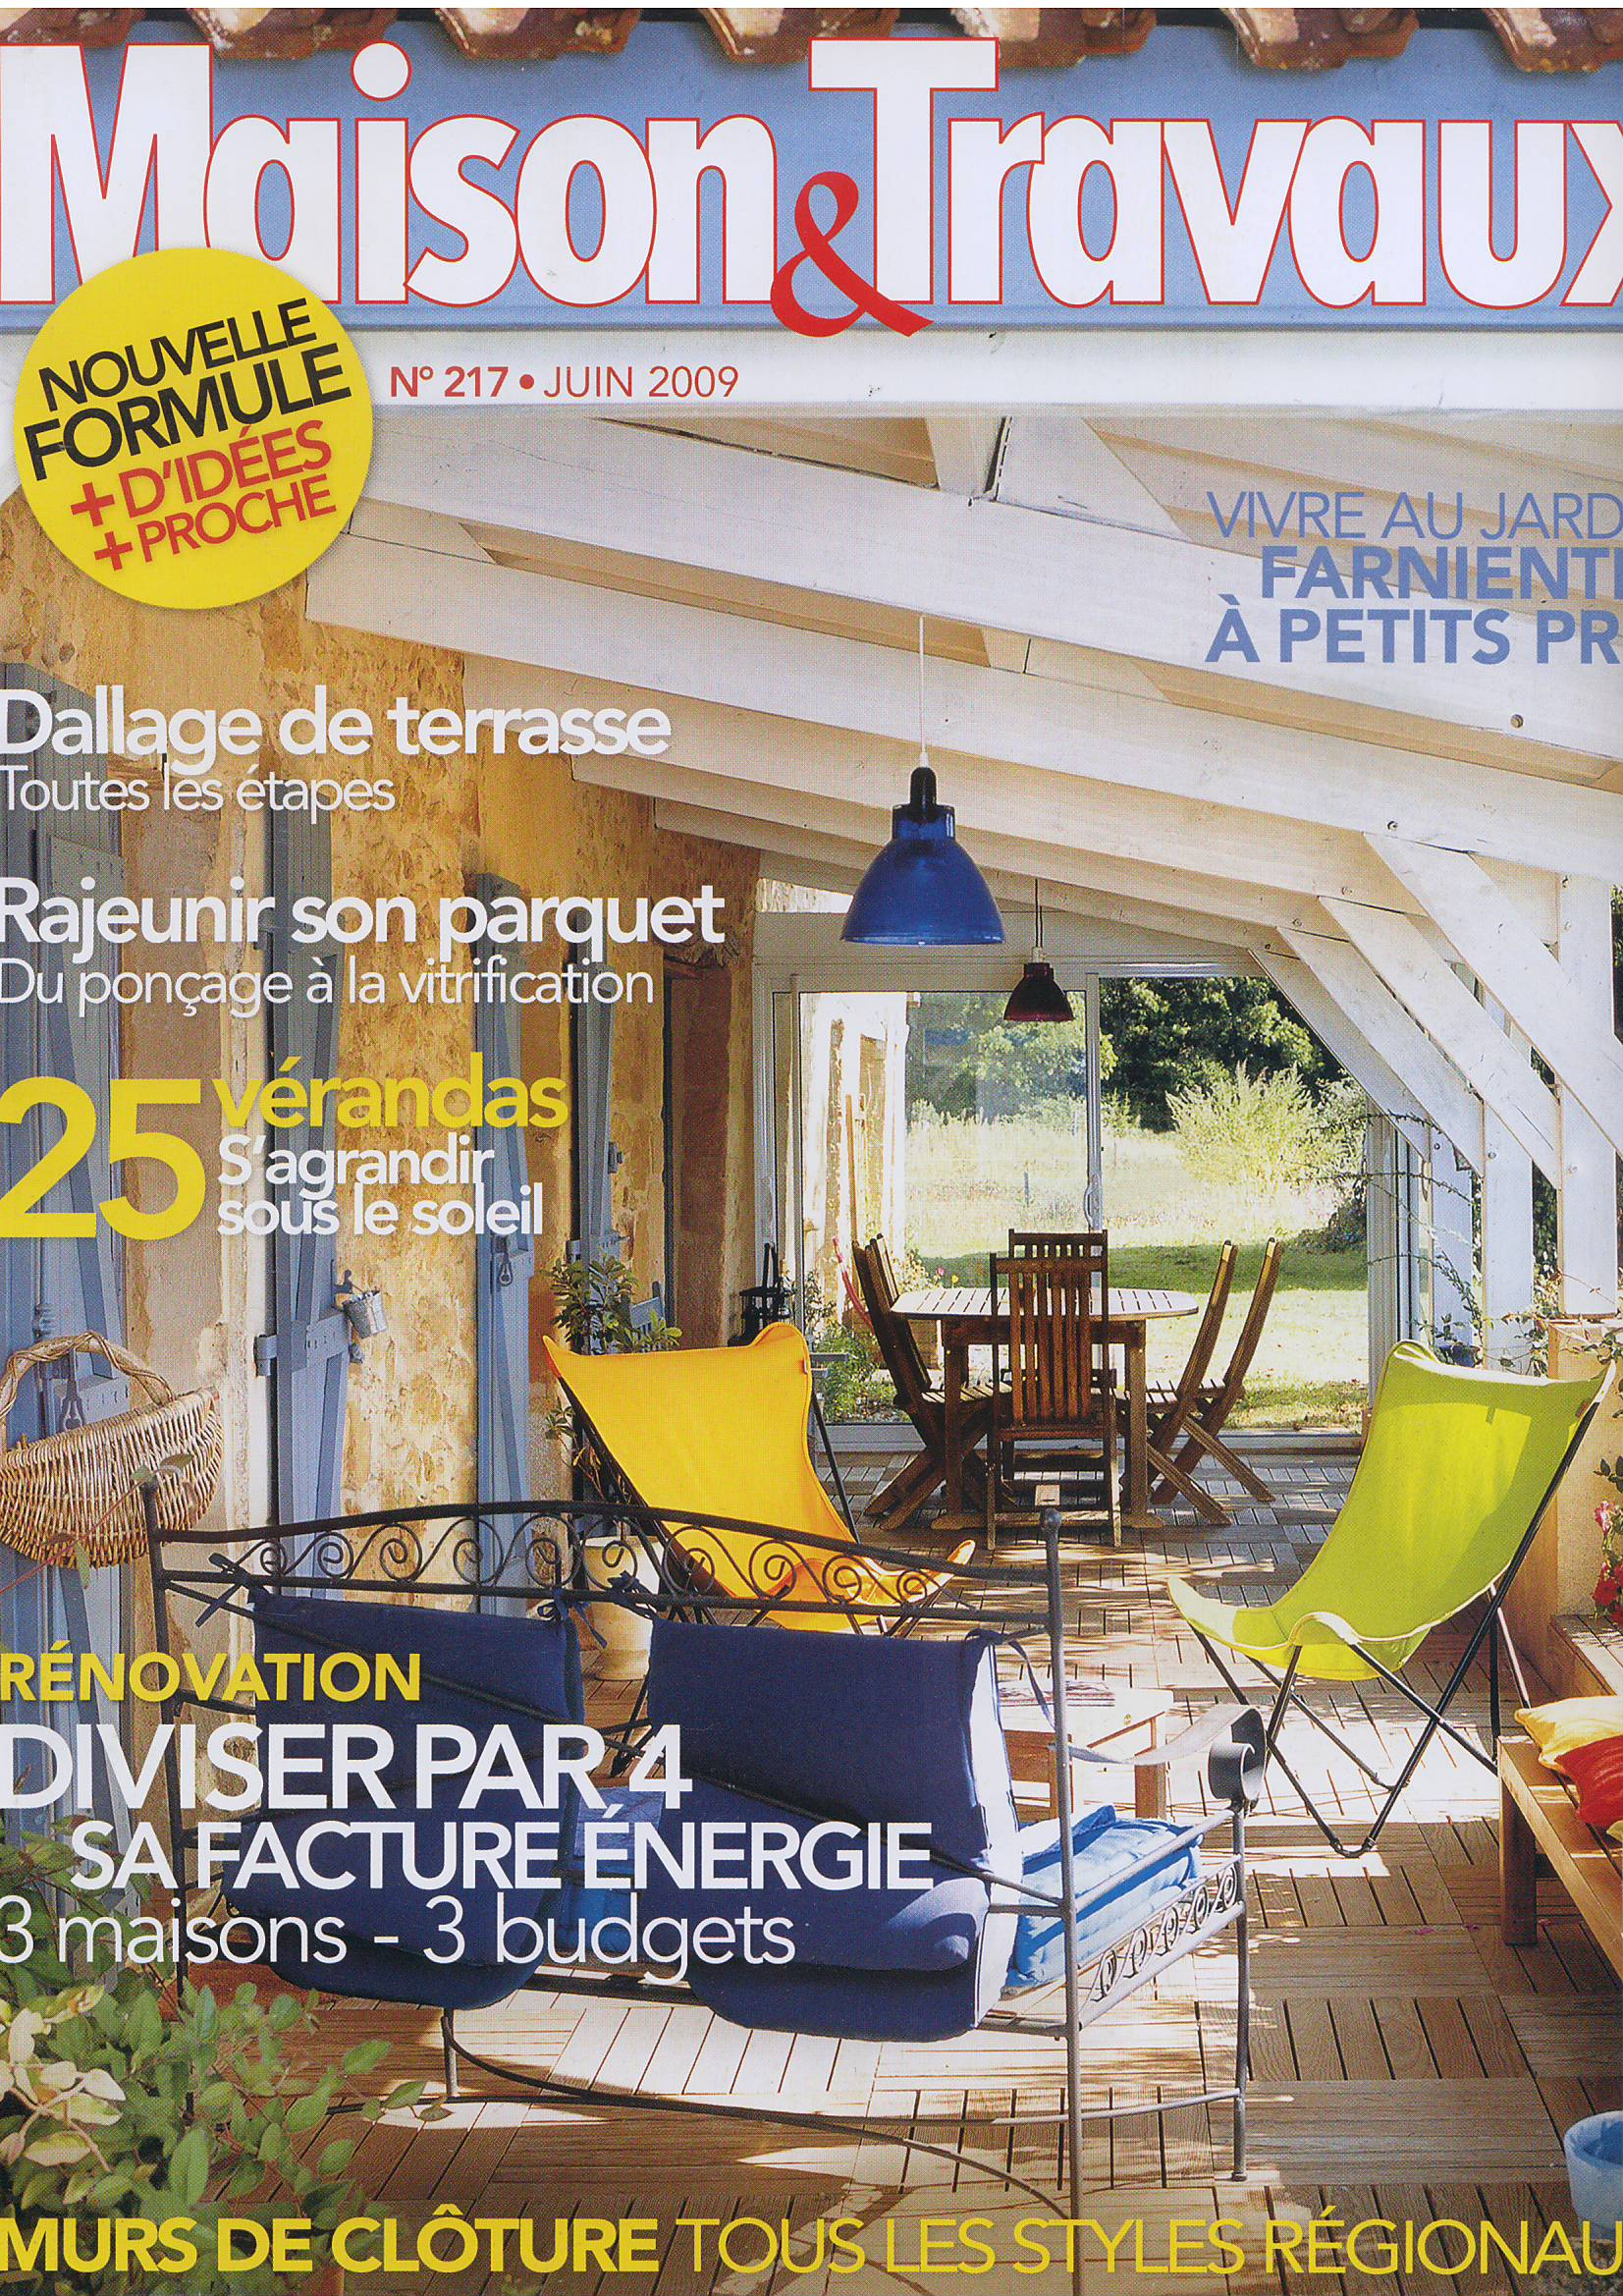 dans le magazine maison et travaux ma belle photo photos d art et de. Black Bedroom Furniture Sets. Home Design Ideas